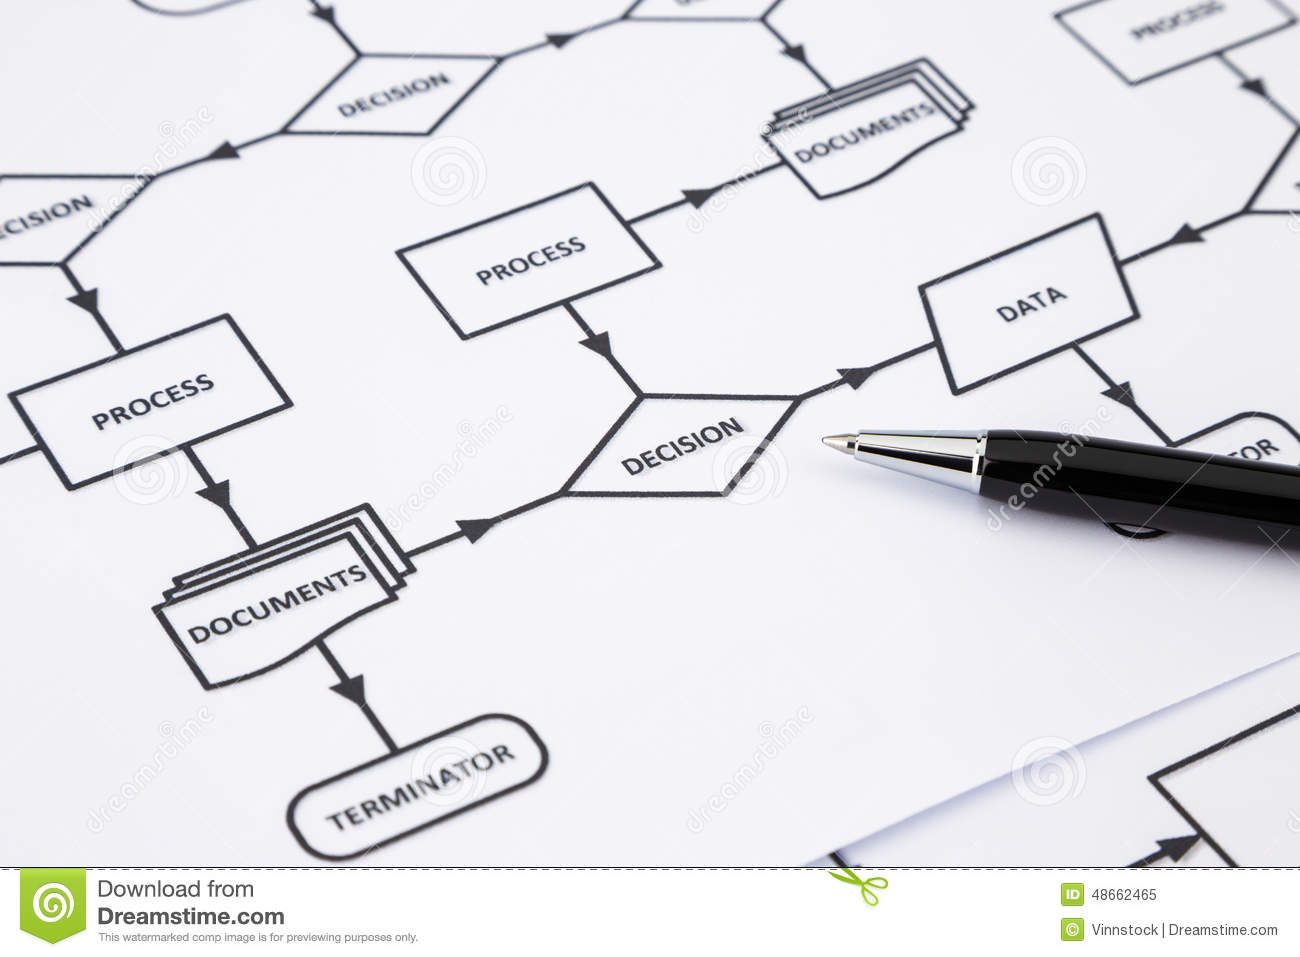 Of Decision Making Process Concept And Method With Arrows And Words